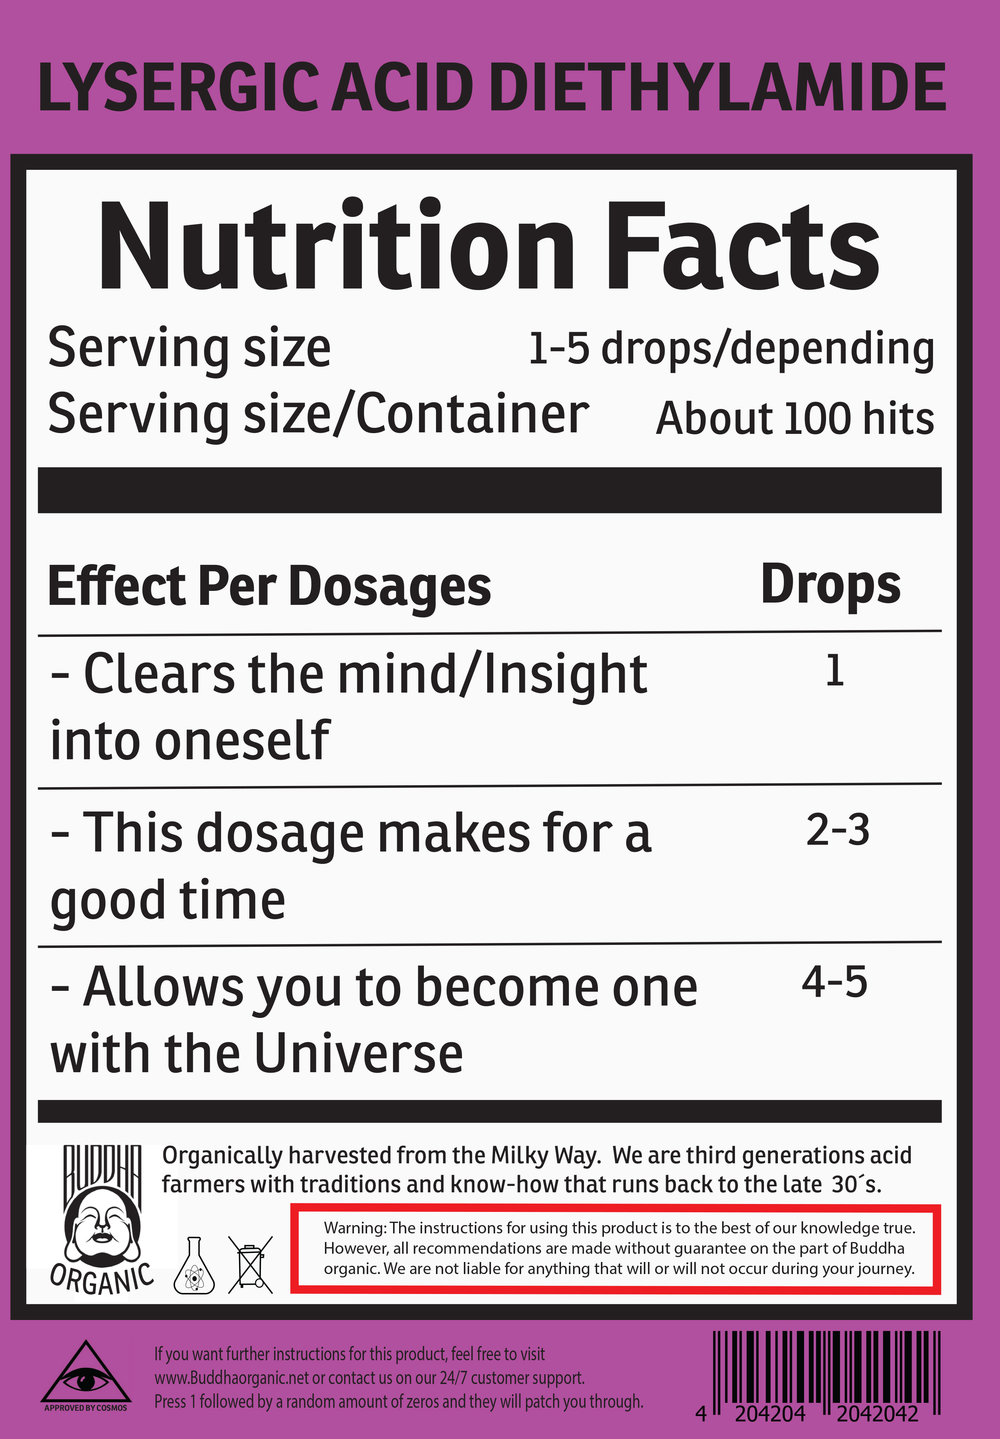 LSD Nutrition Poster  €9.99–€14.99 Available in A4, A3